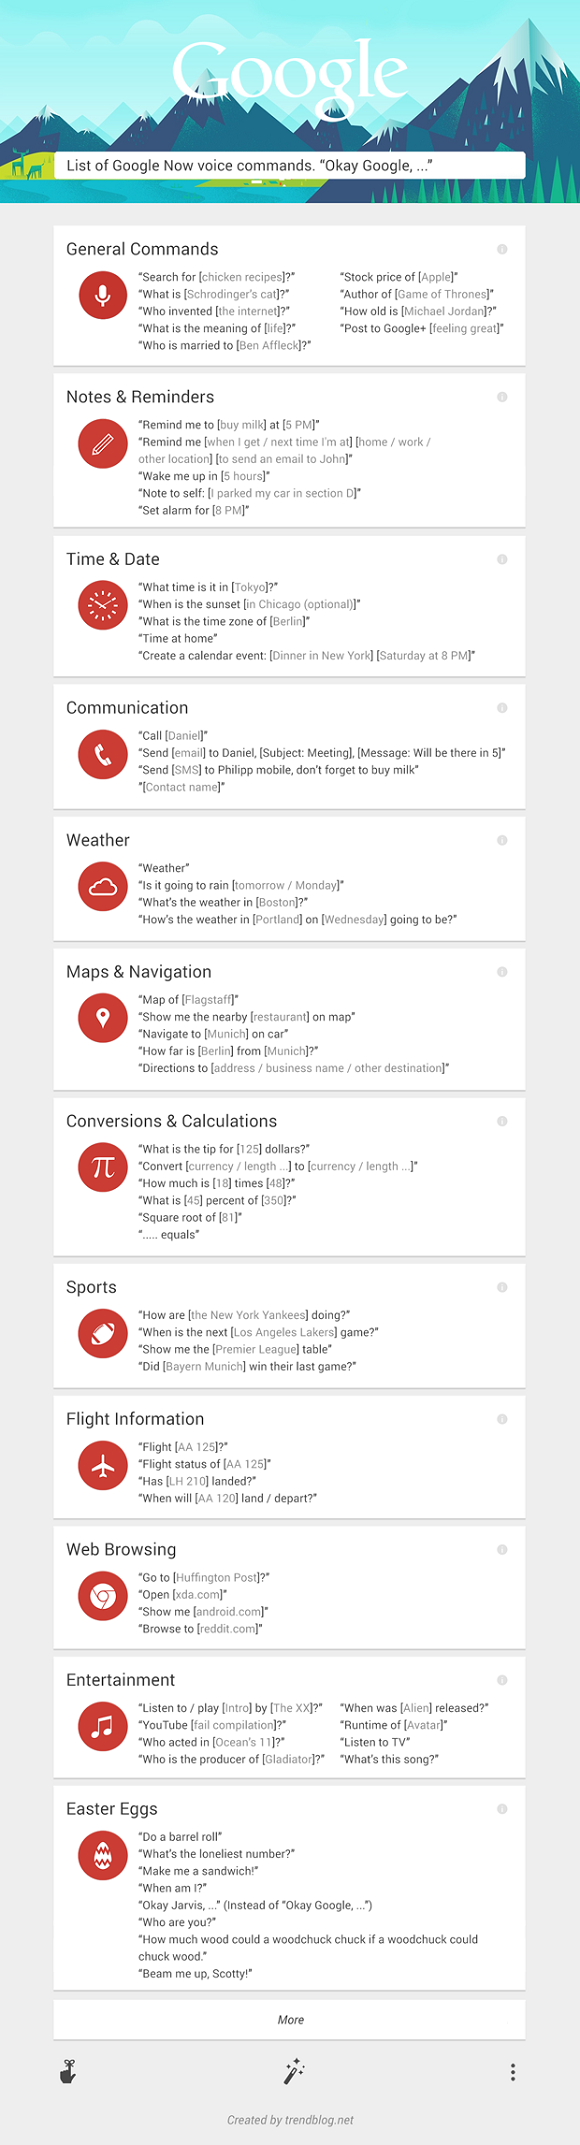 list-google-now-commads-infographic-v2